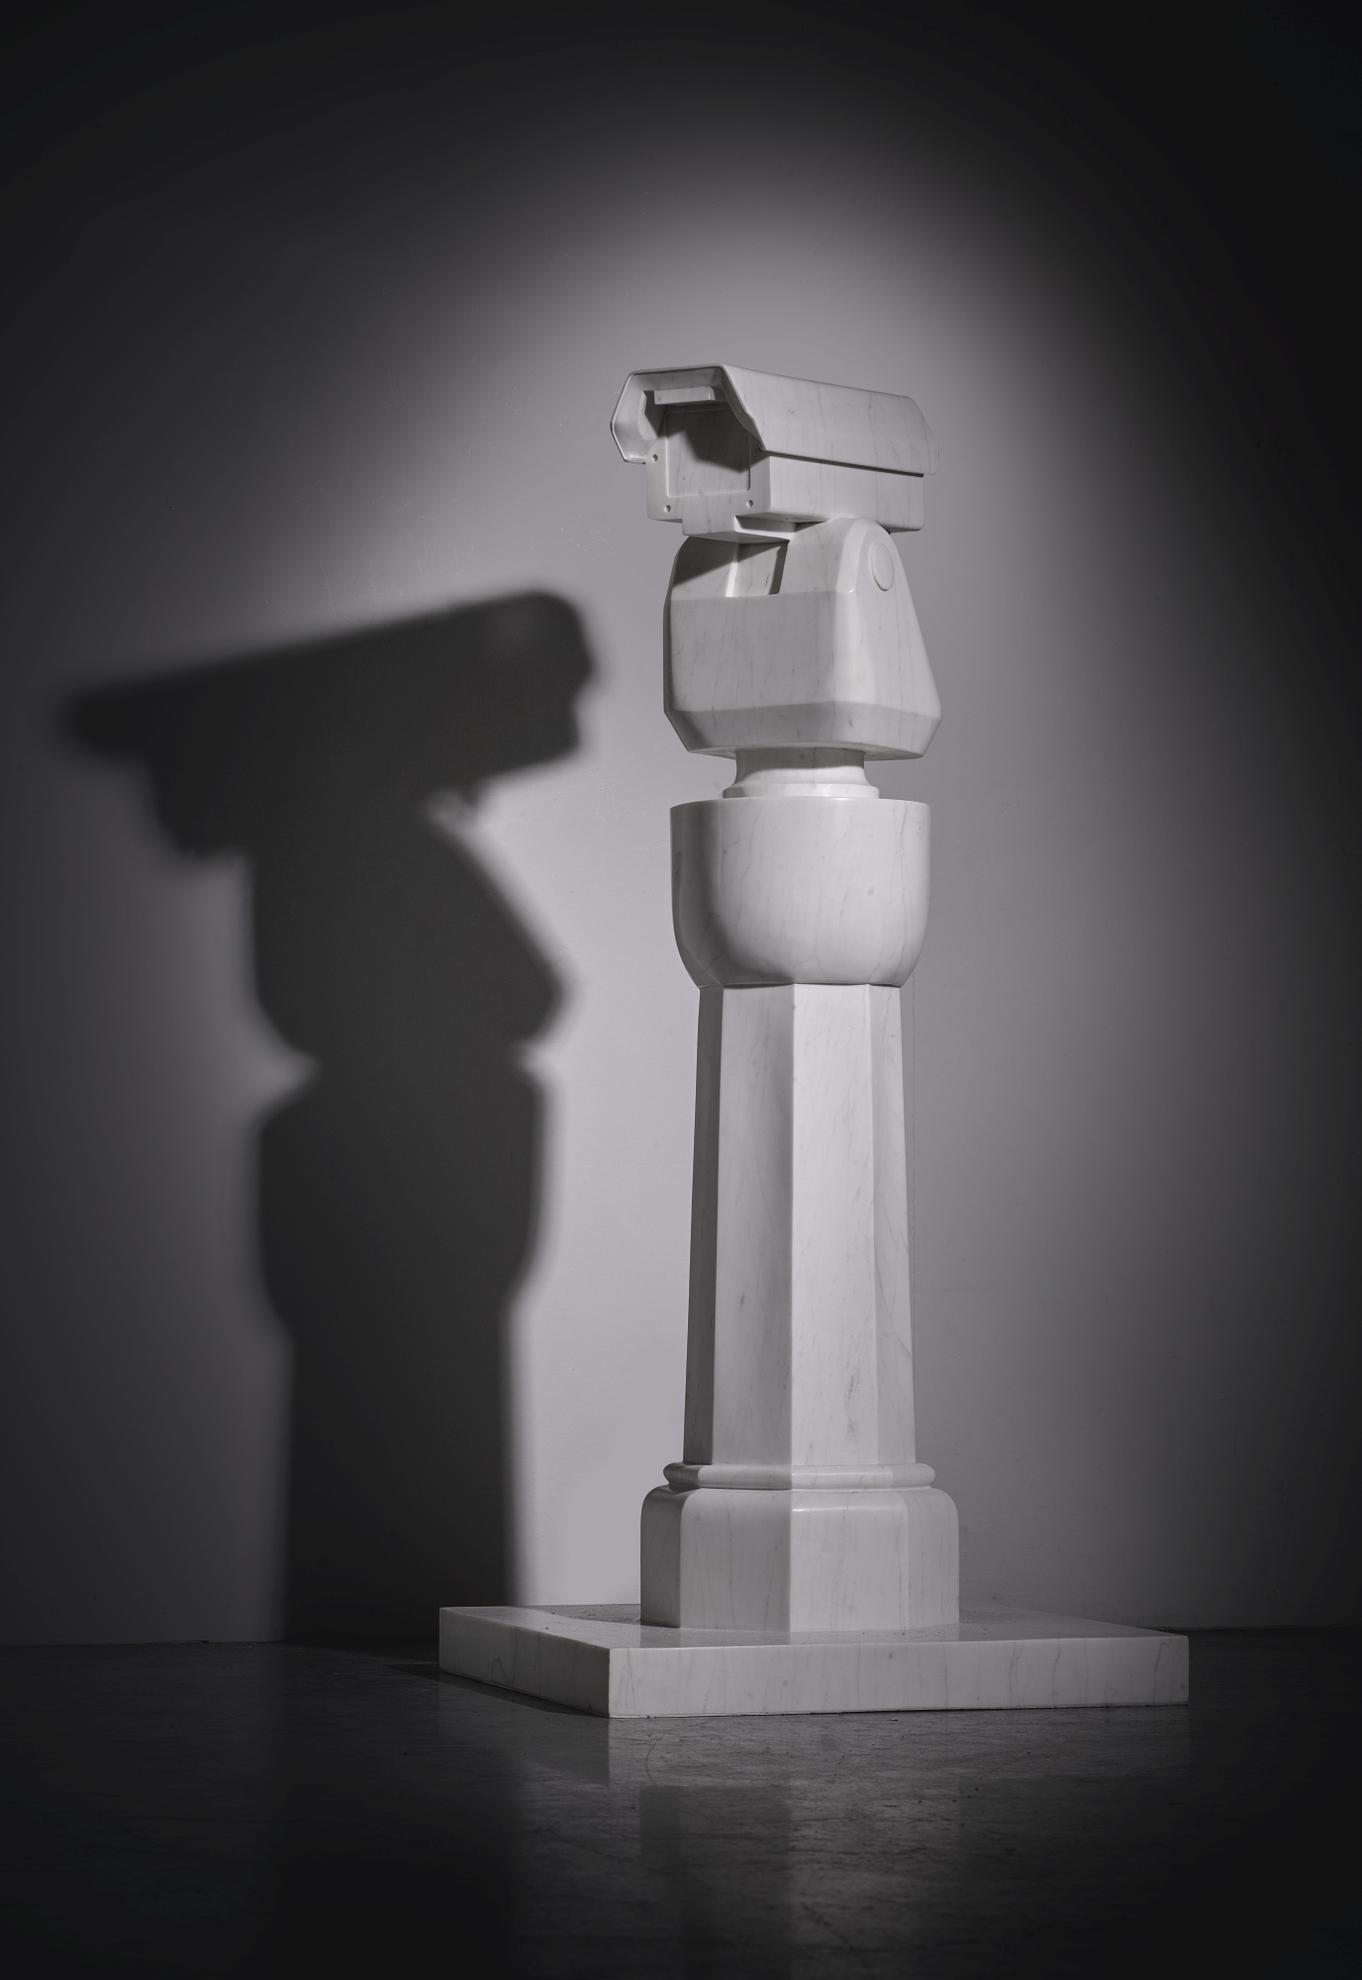 Ai Weiwei-Surveillance Camera And Plinth-2015